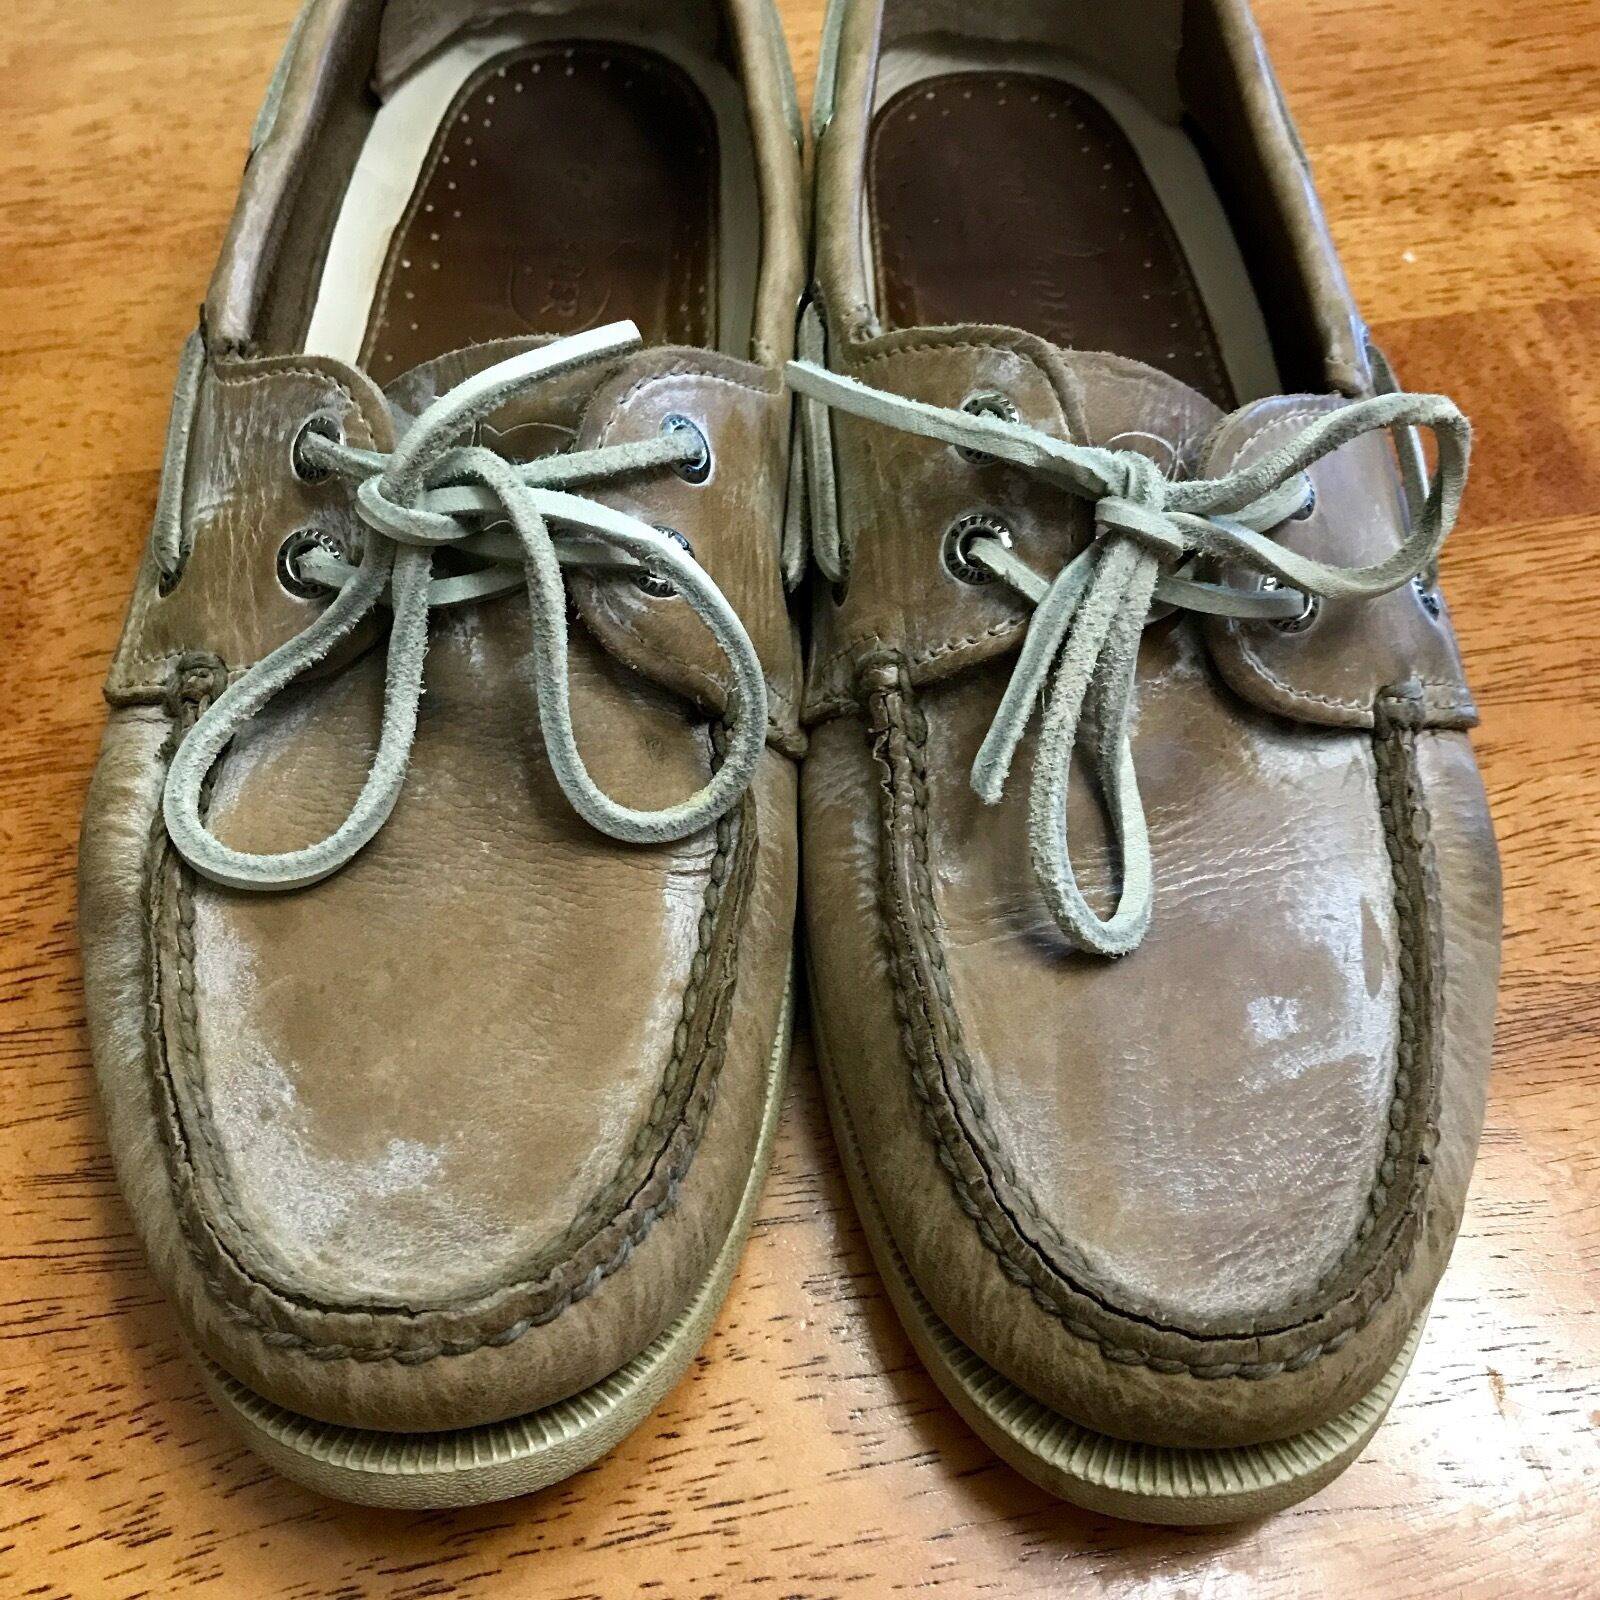 Mens Sperry Top-Sider Sun Washed Salt Washed Boat shoes - 10